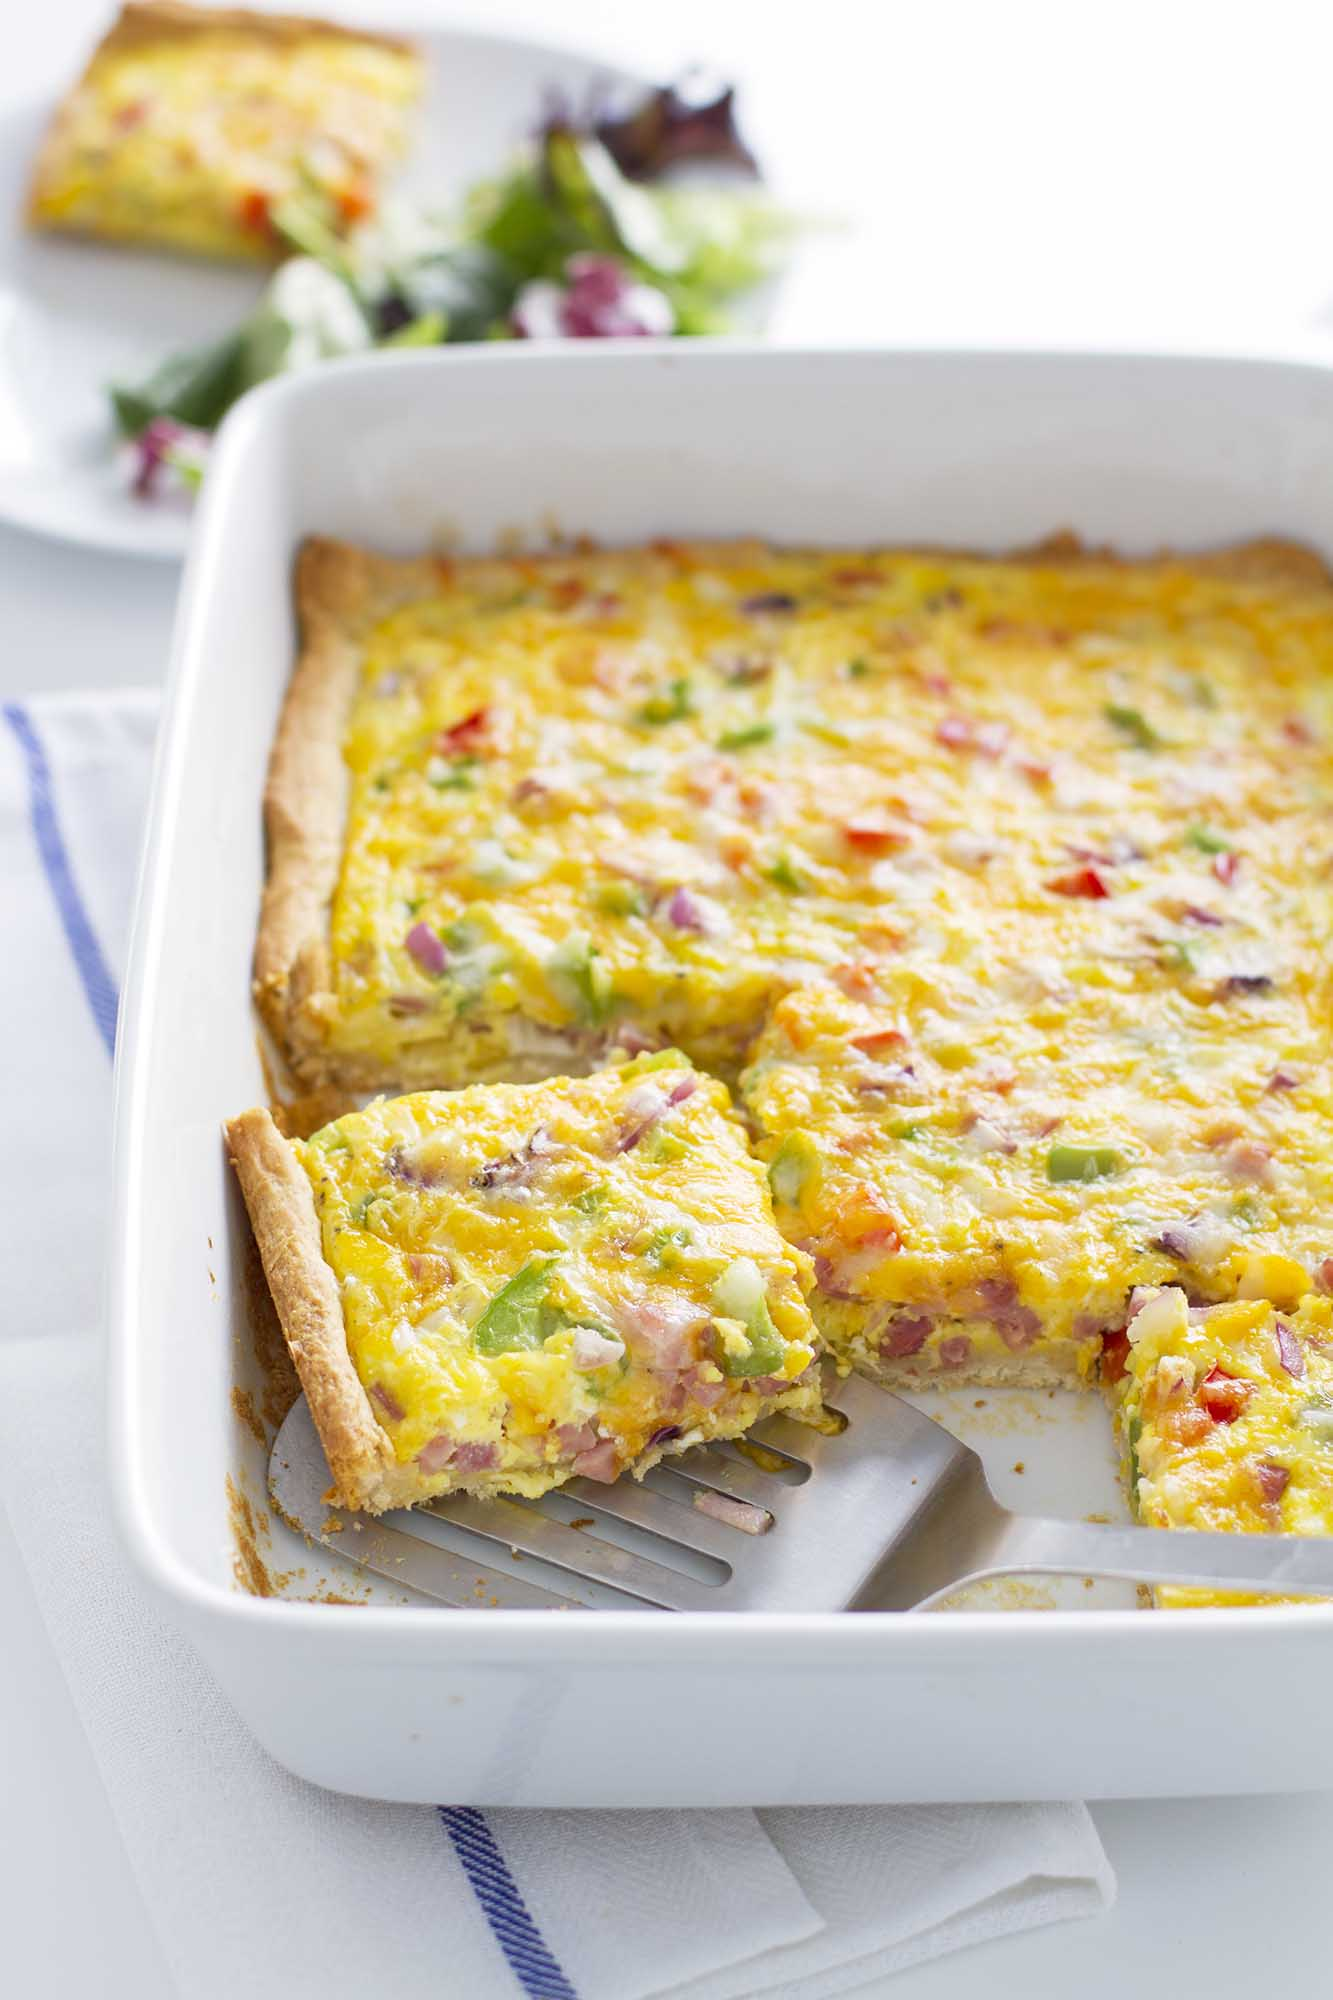 Denver Omelette Crescent Bake | girlversusdough.com @girlversusdough